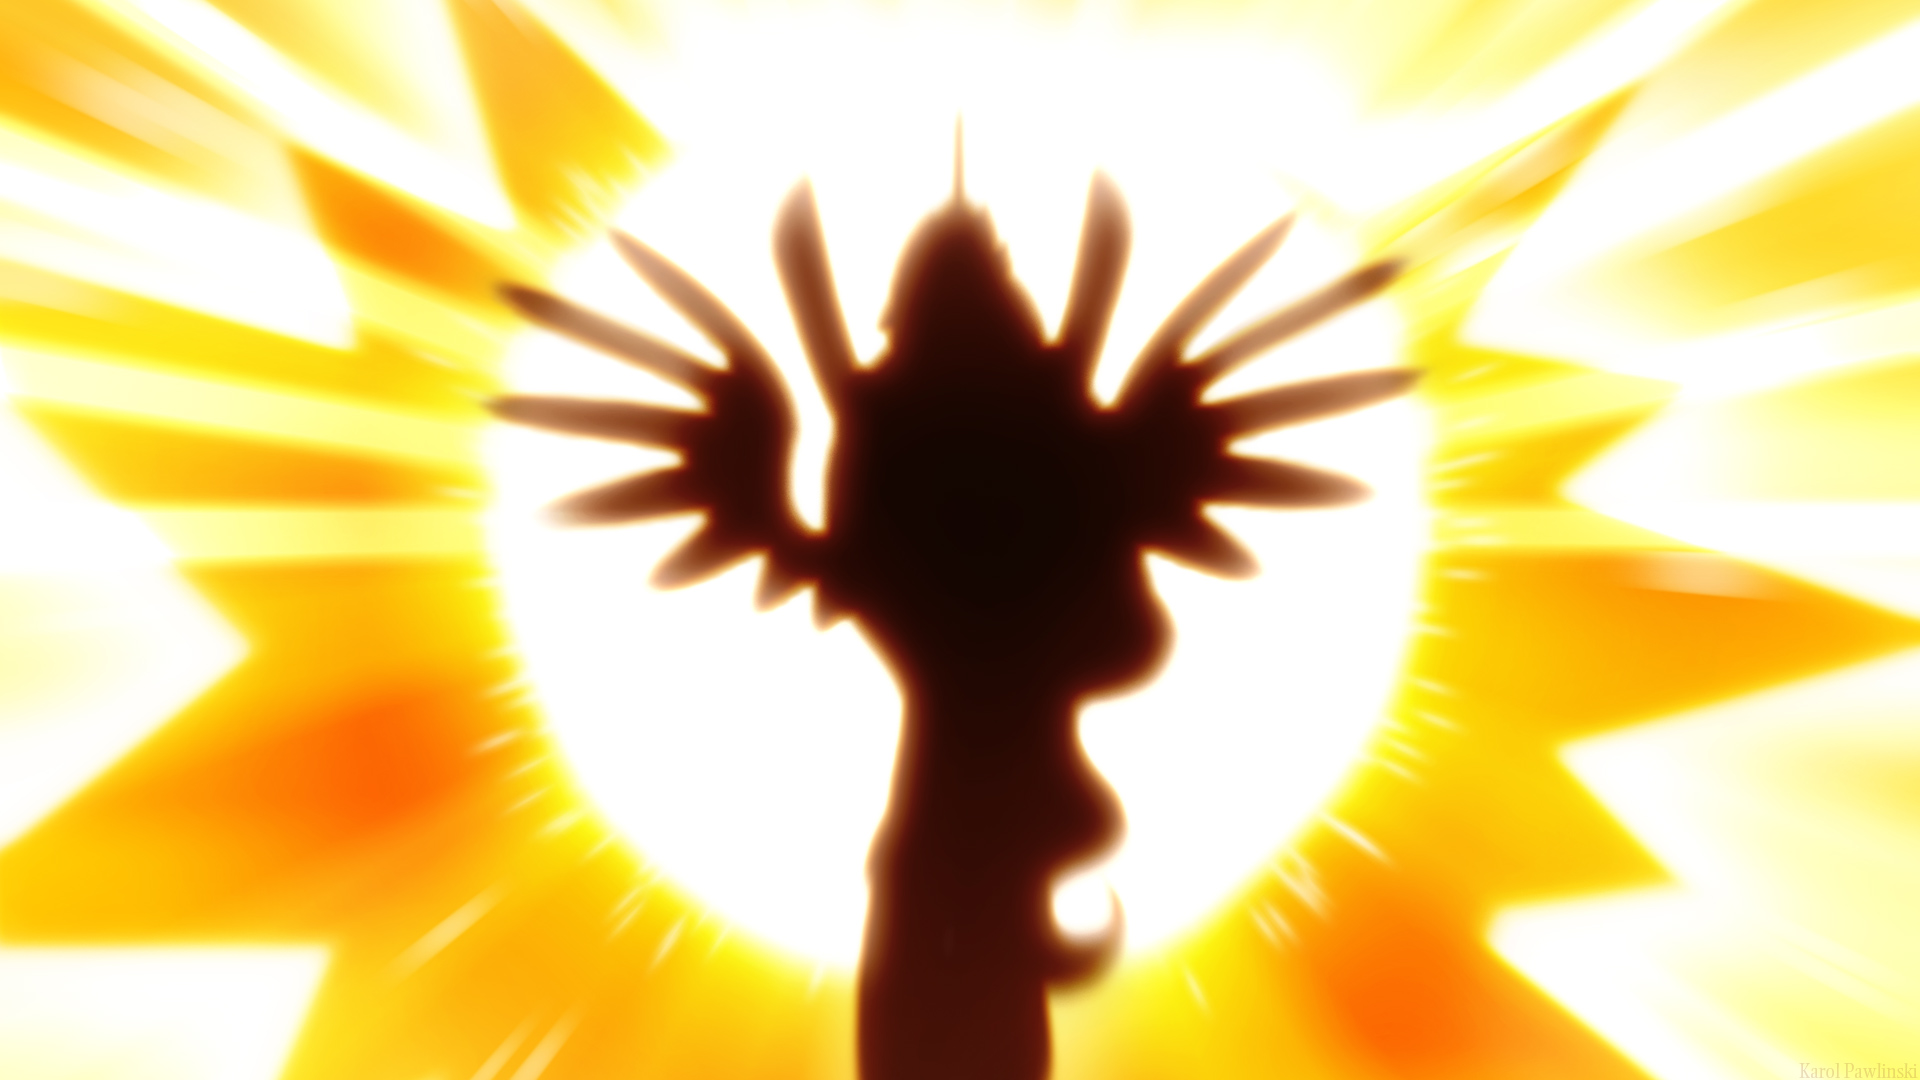 The silhouette of Princess Celestia flying in front of an incredibly bright sun.